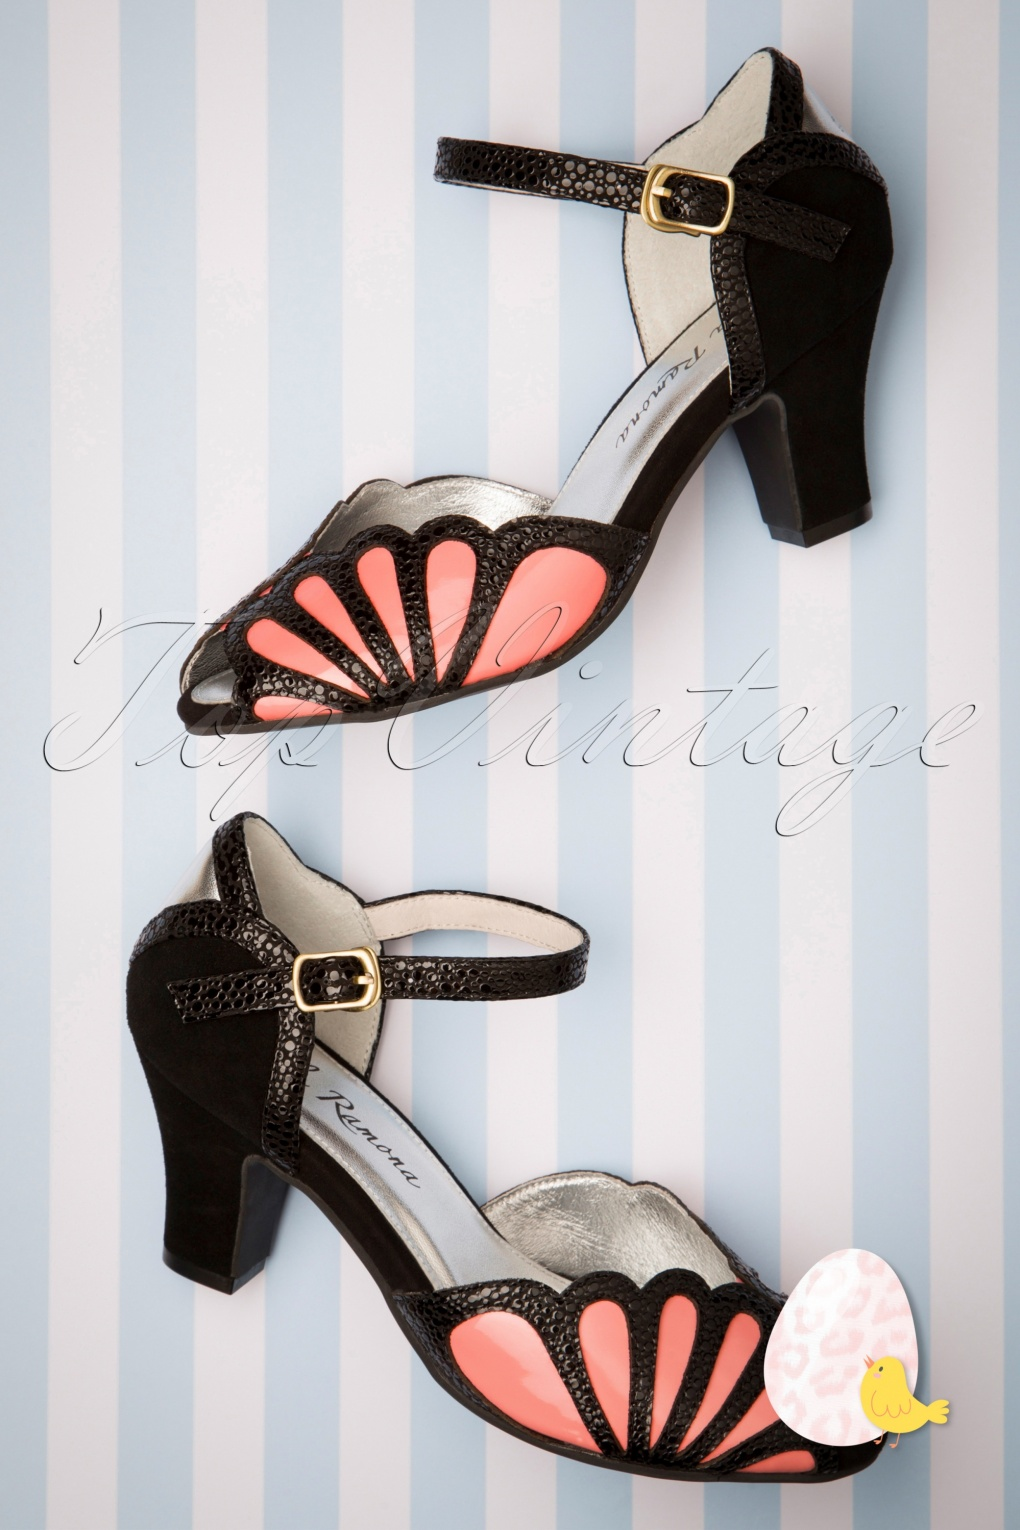 1930s Style Shoes – Art Deco Shoes 20s Ava Affection Sandals in Black and Pink �116.69 AT vintagedancer.com